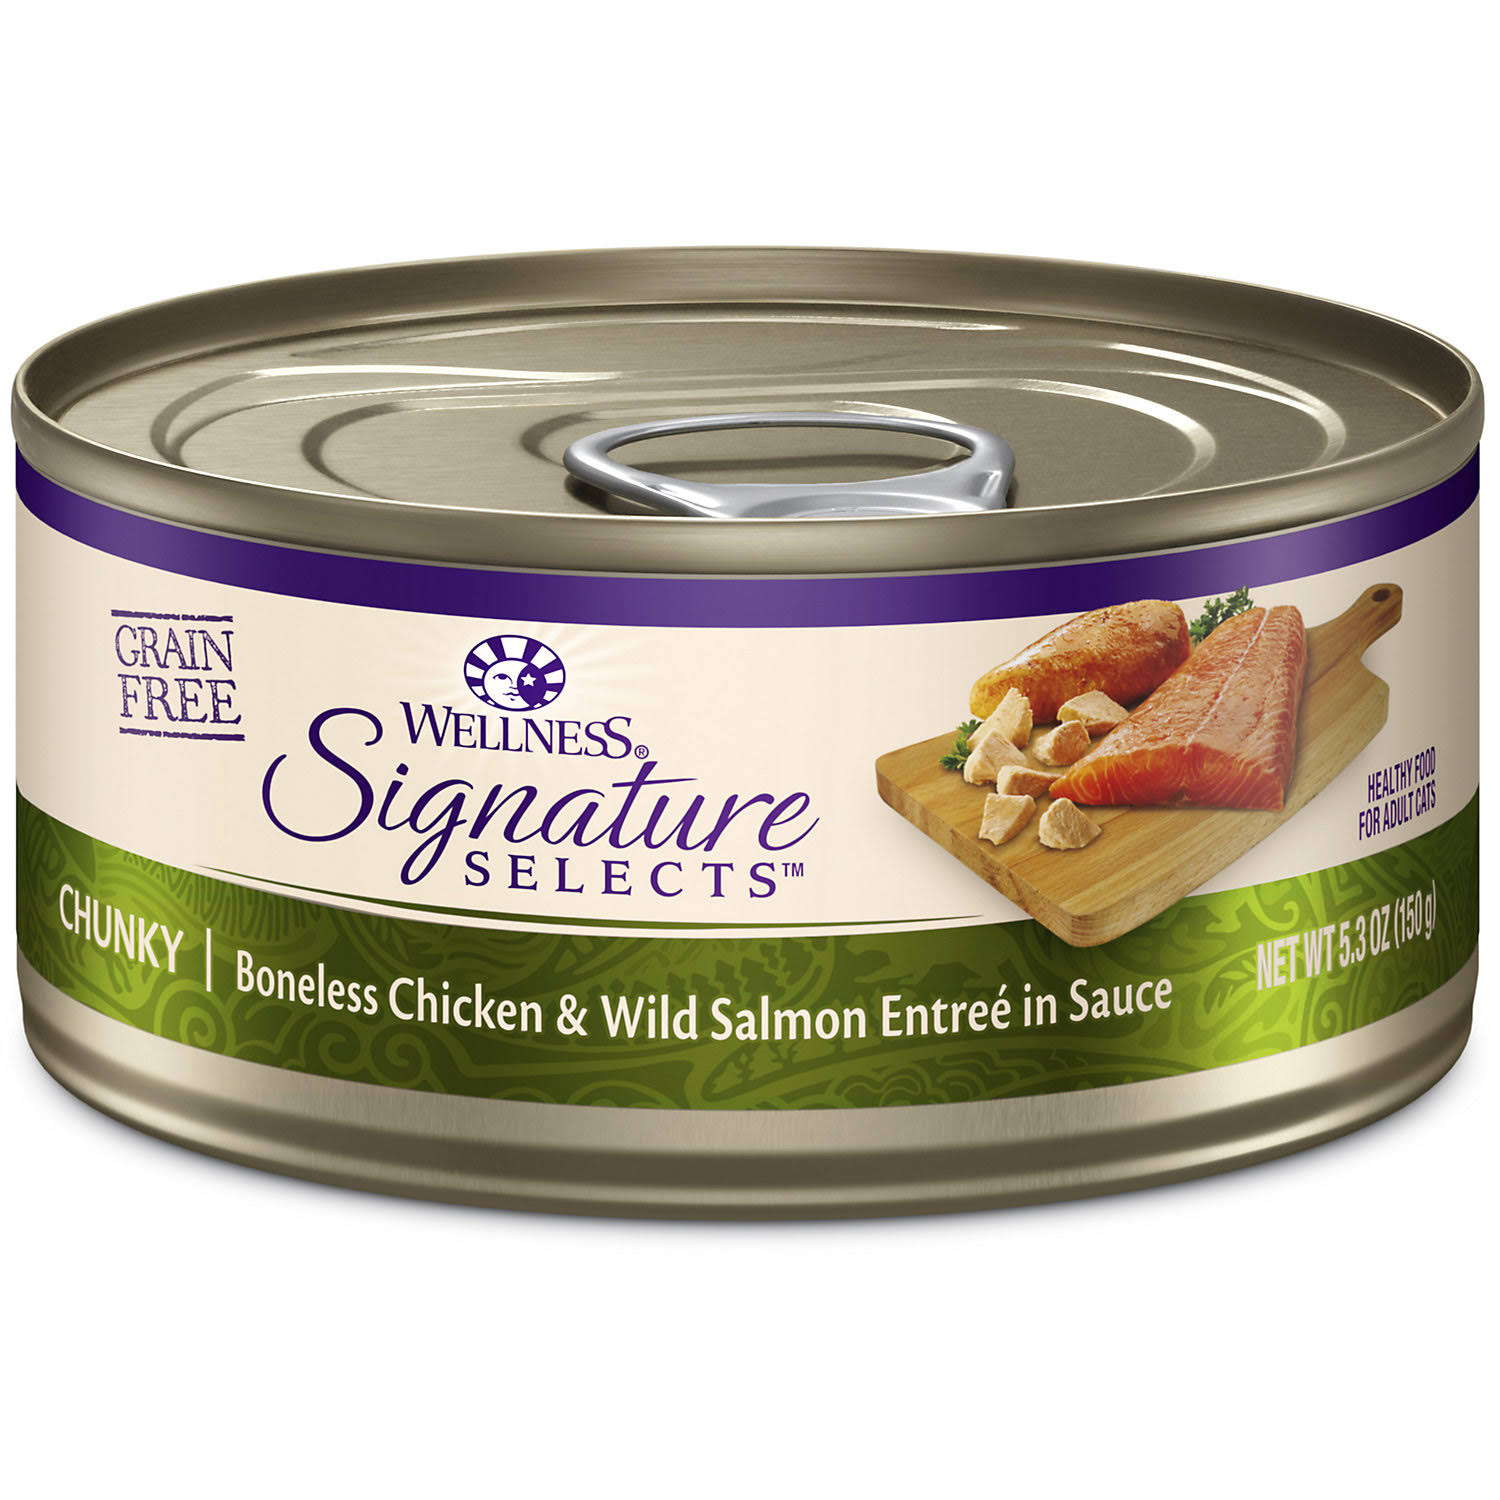 Wellness Signature Selects Grain Free Natural White Meat Chicken & Wild Salmon Entree in Sauce Wet Canned Cat Food - 5.3 oz, Case of 12